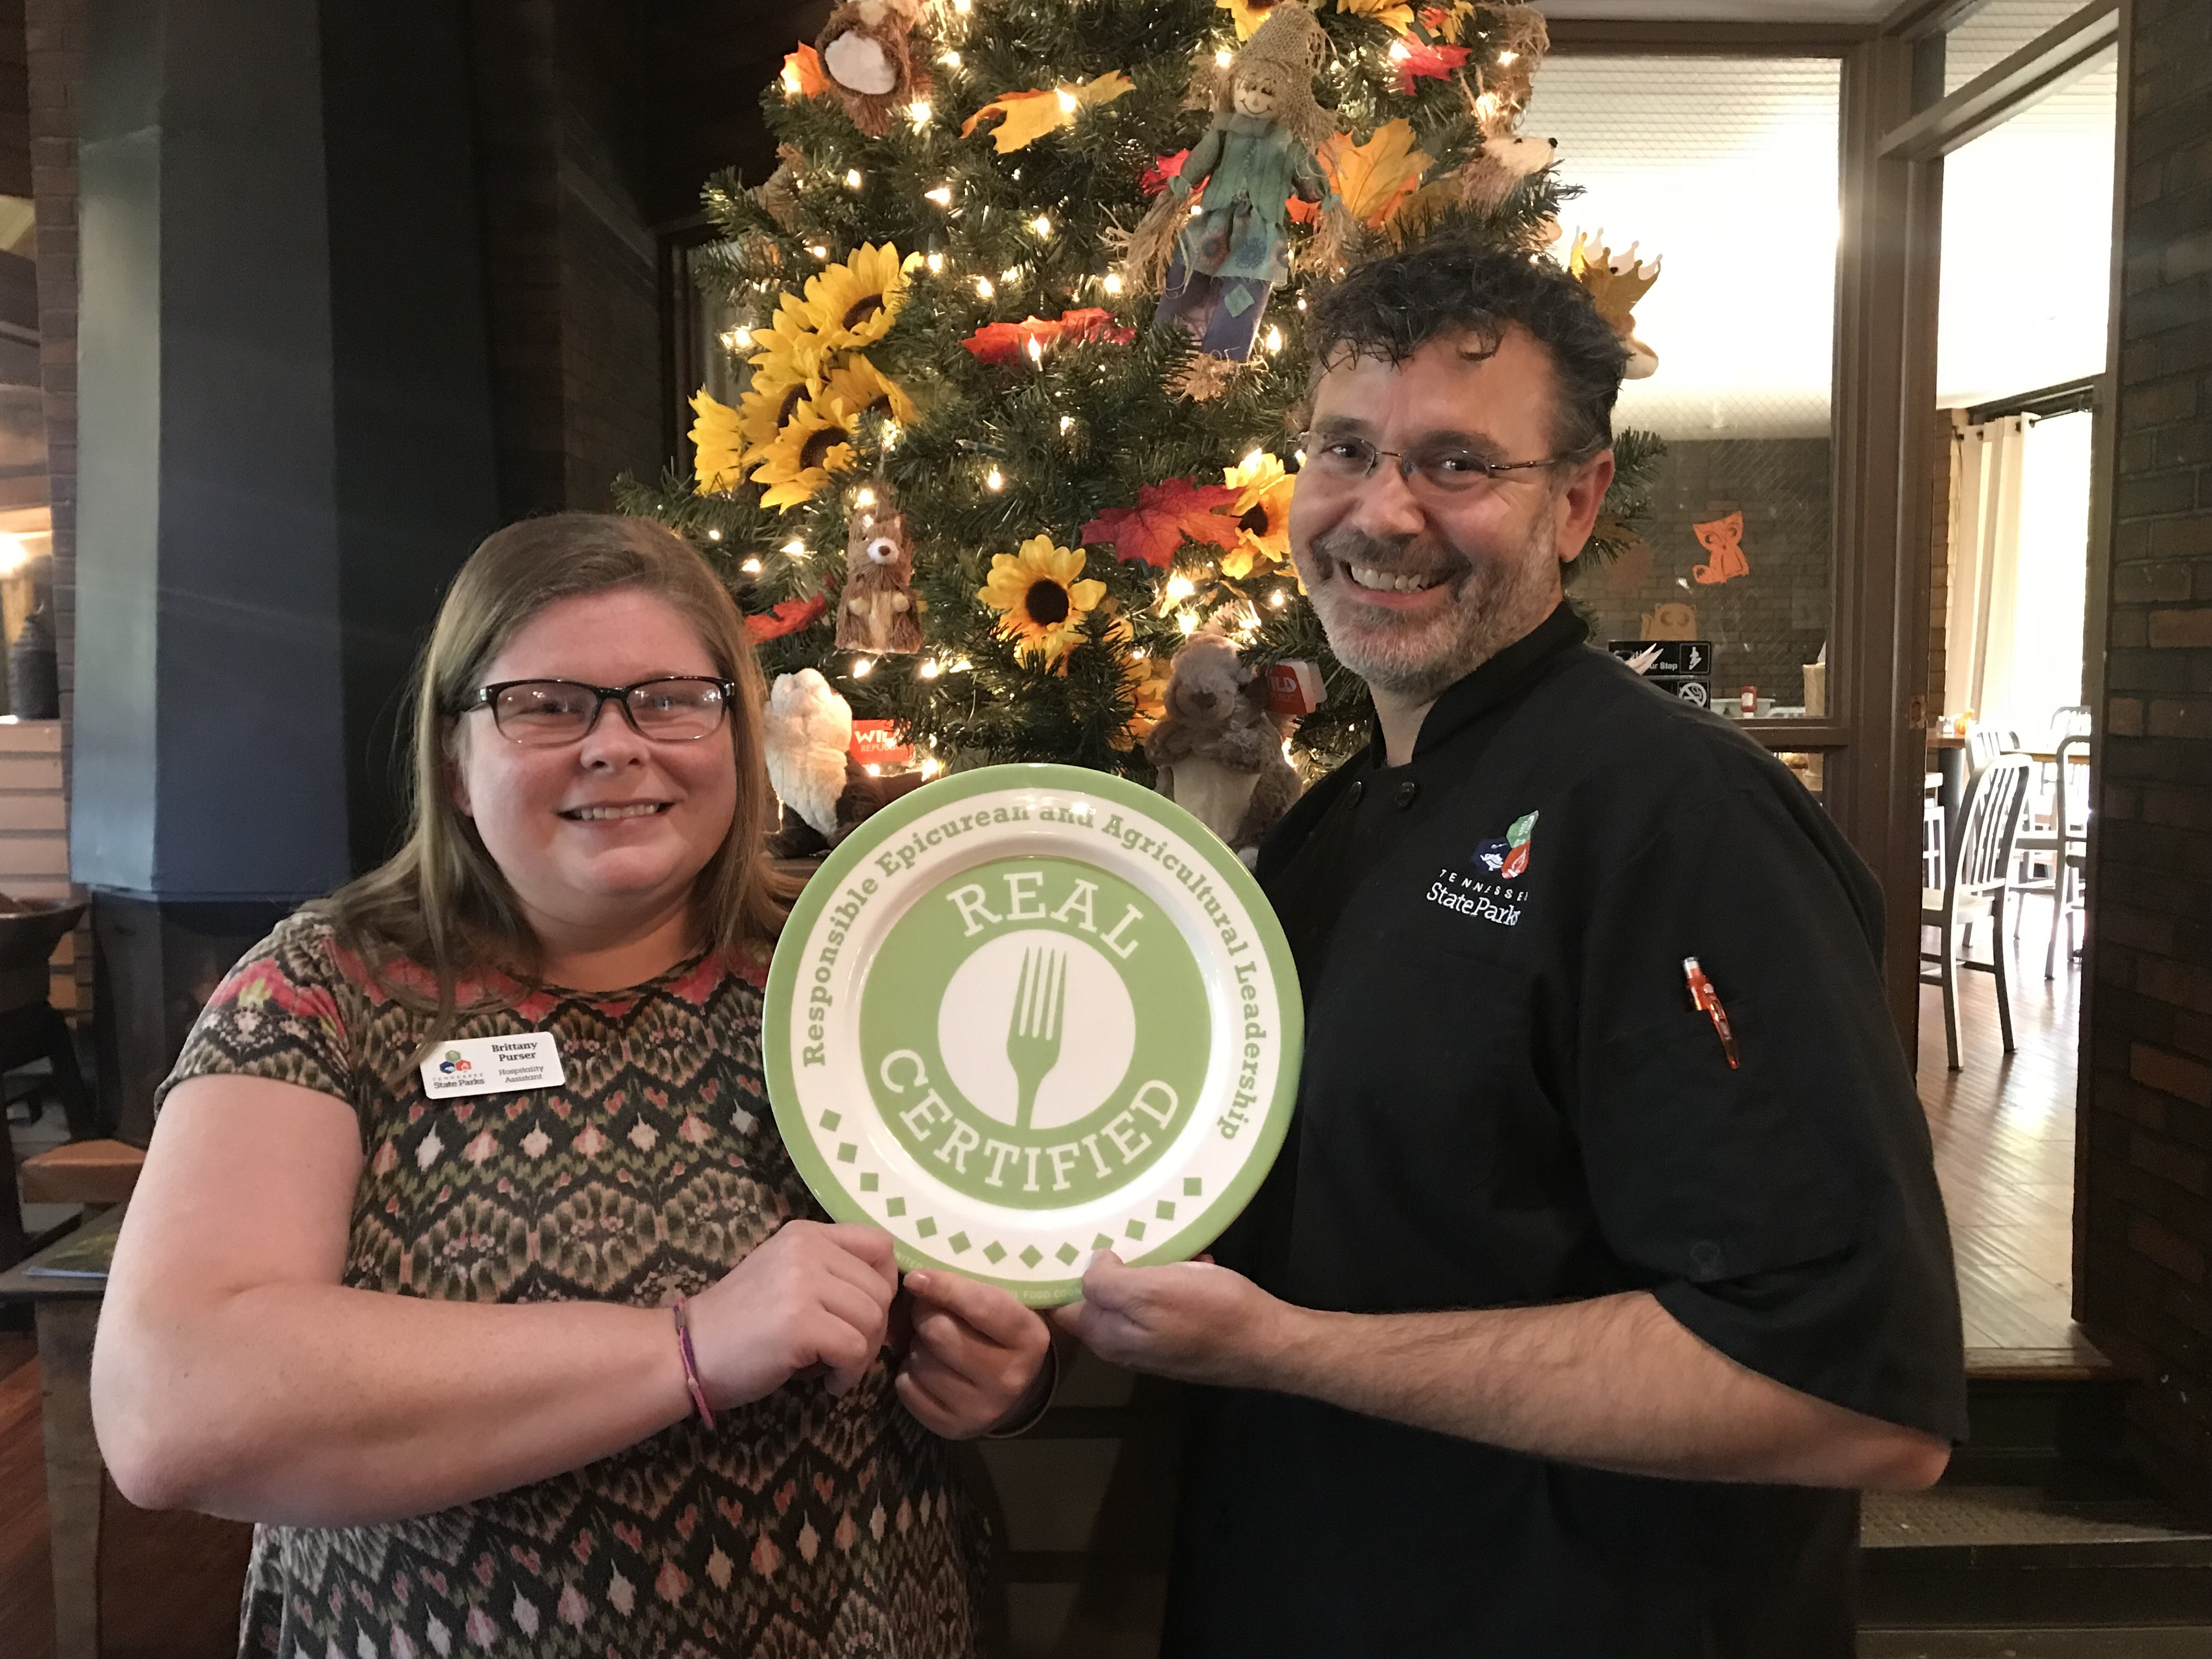 David Crockett State Park achieves Eat Real Certification.